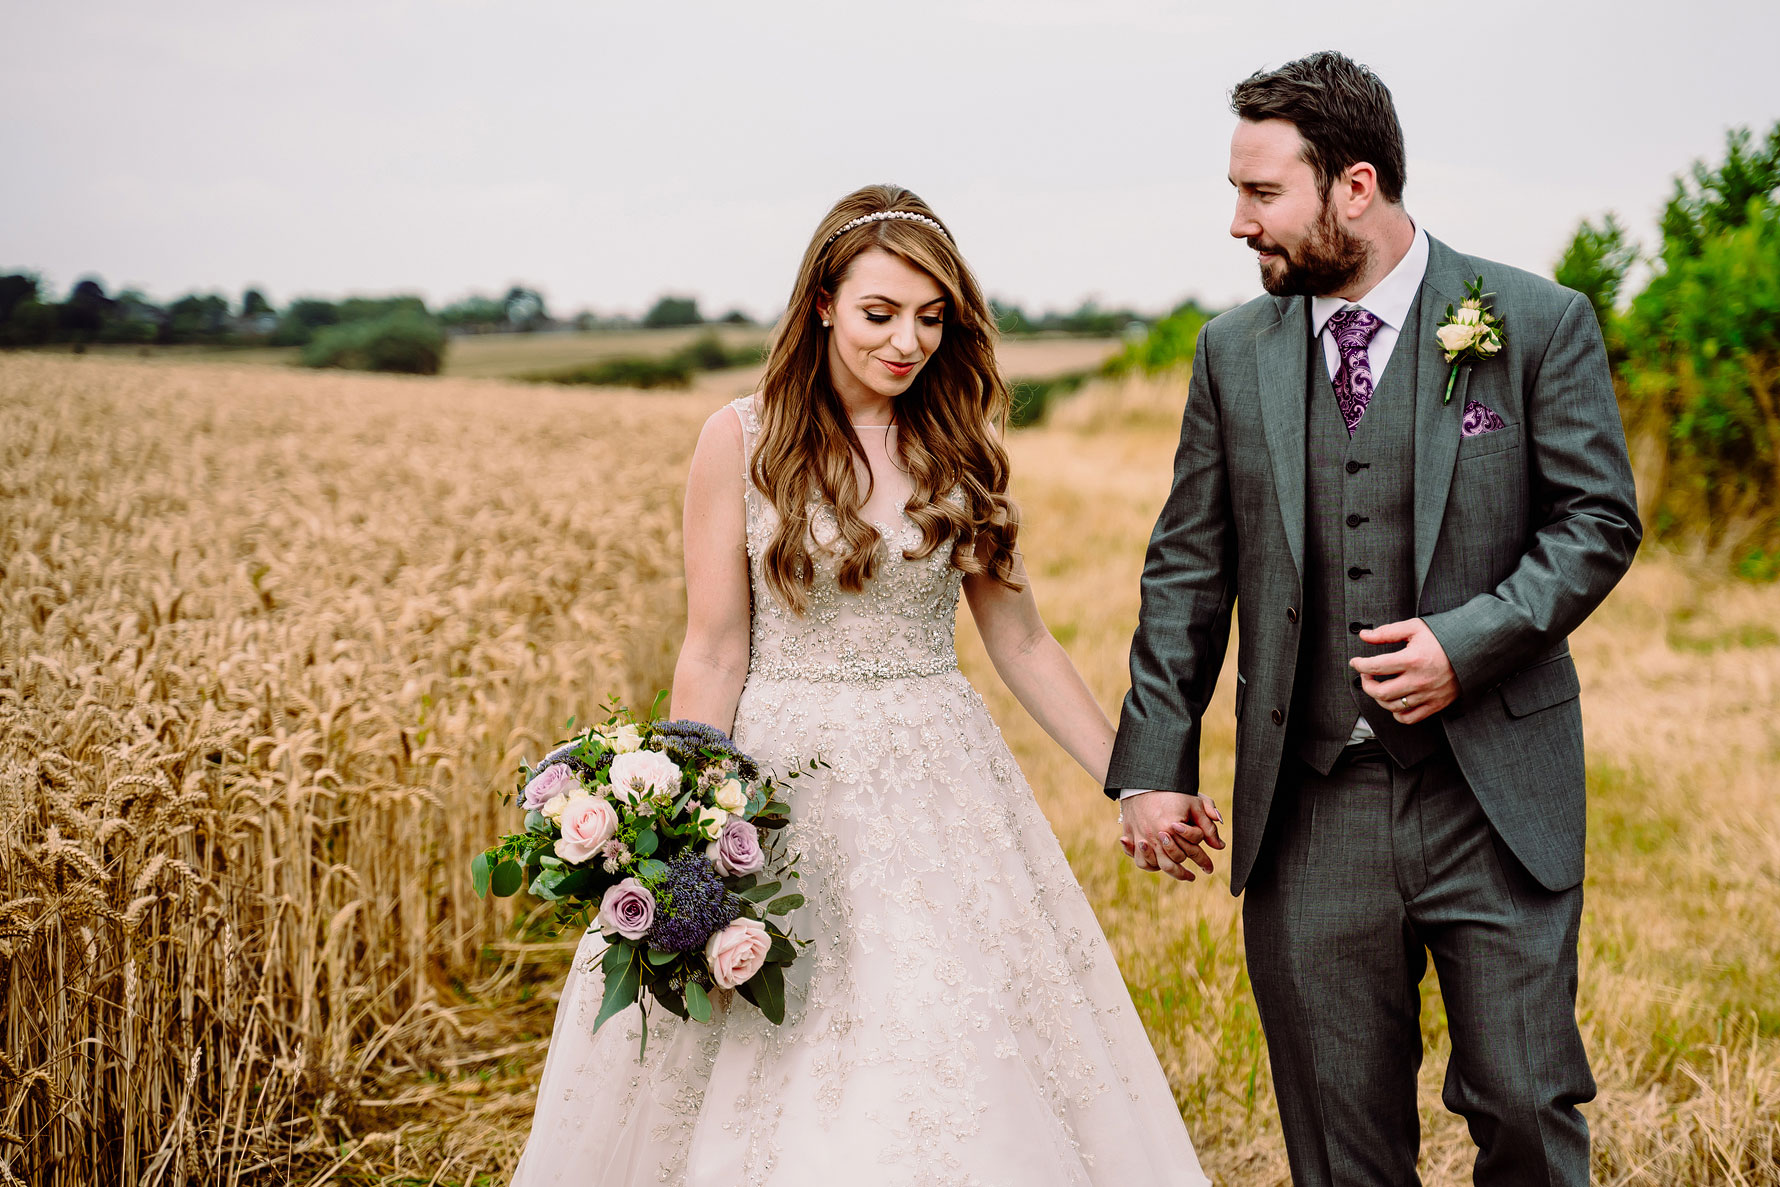 wedding photography at notley tythe barn by elliot w patching photography